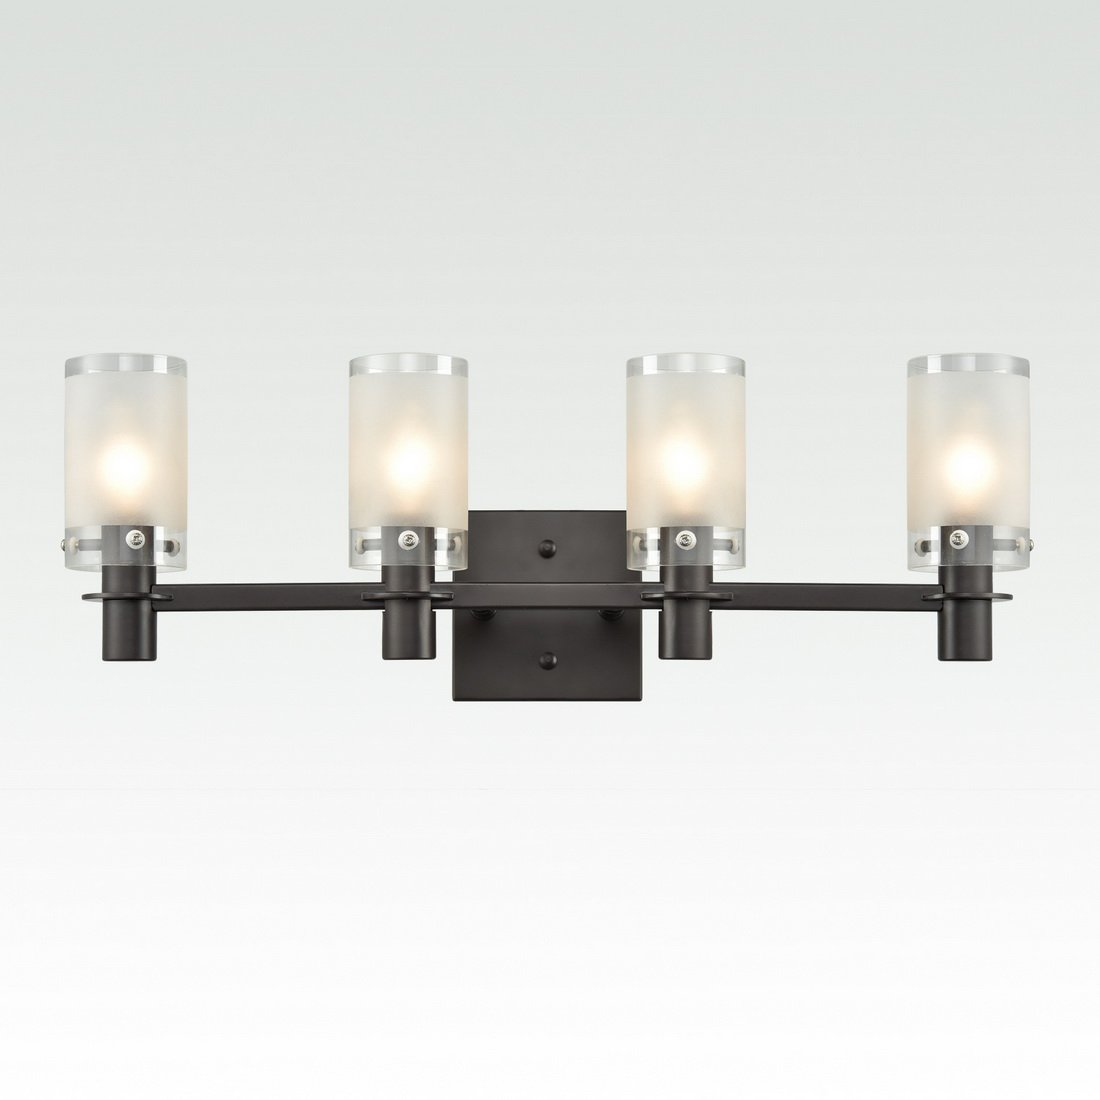 AXILAND Bath Vanity Light Bar Fixture ORB Finish with 4 Frosted Glass Shades